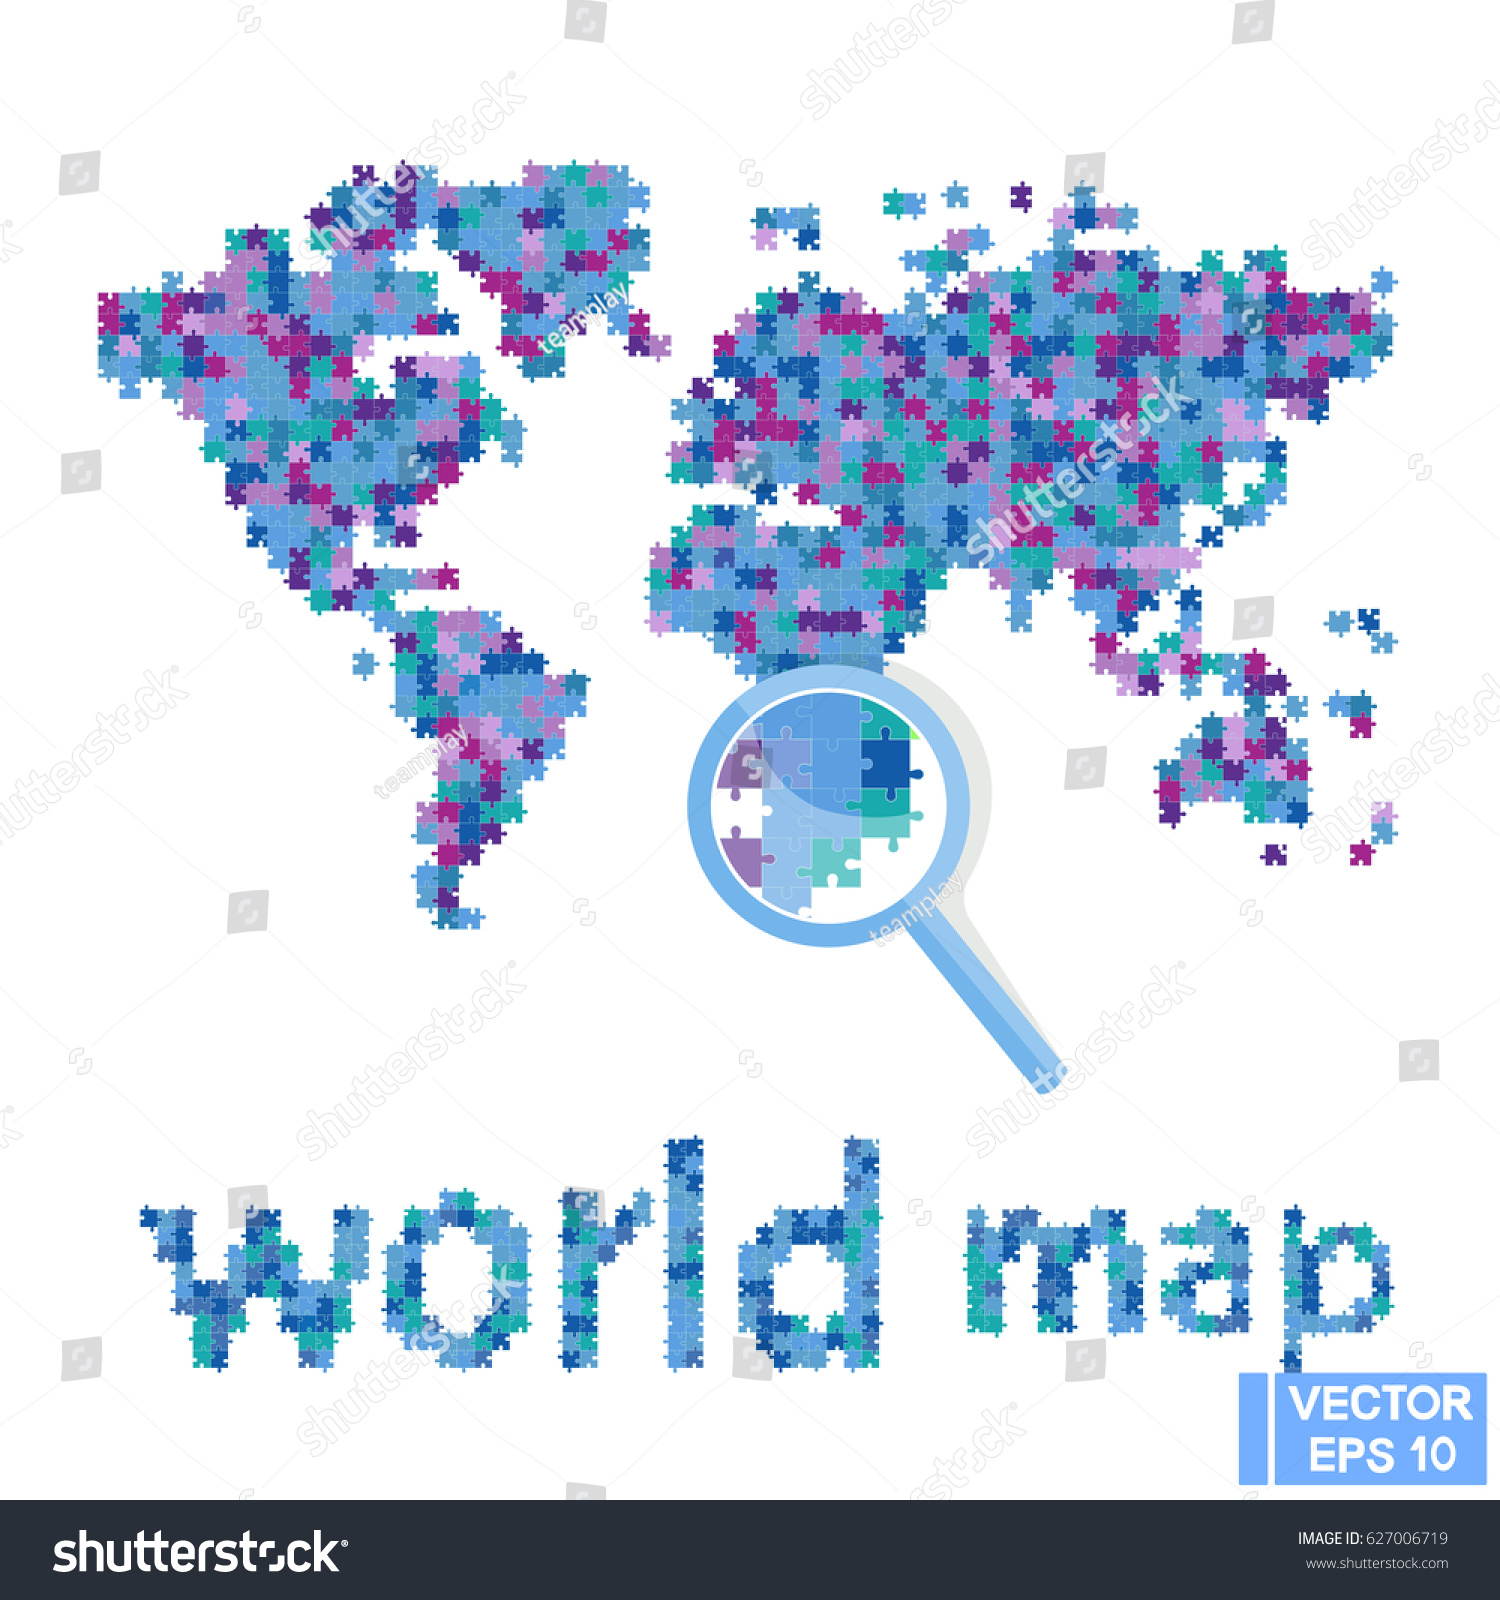 Vector image world map puzzle continents stock vector 627006719 vector image world map puzzle continents from the mosaic gumiabroncs Choice Image